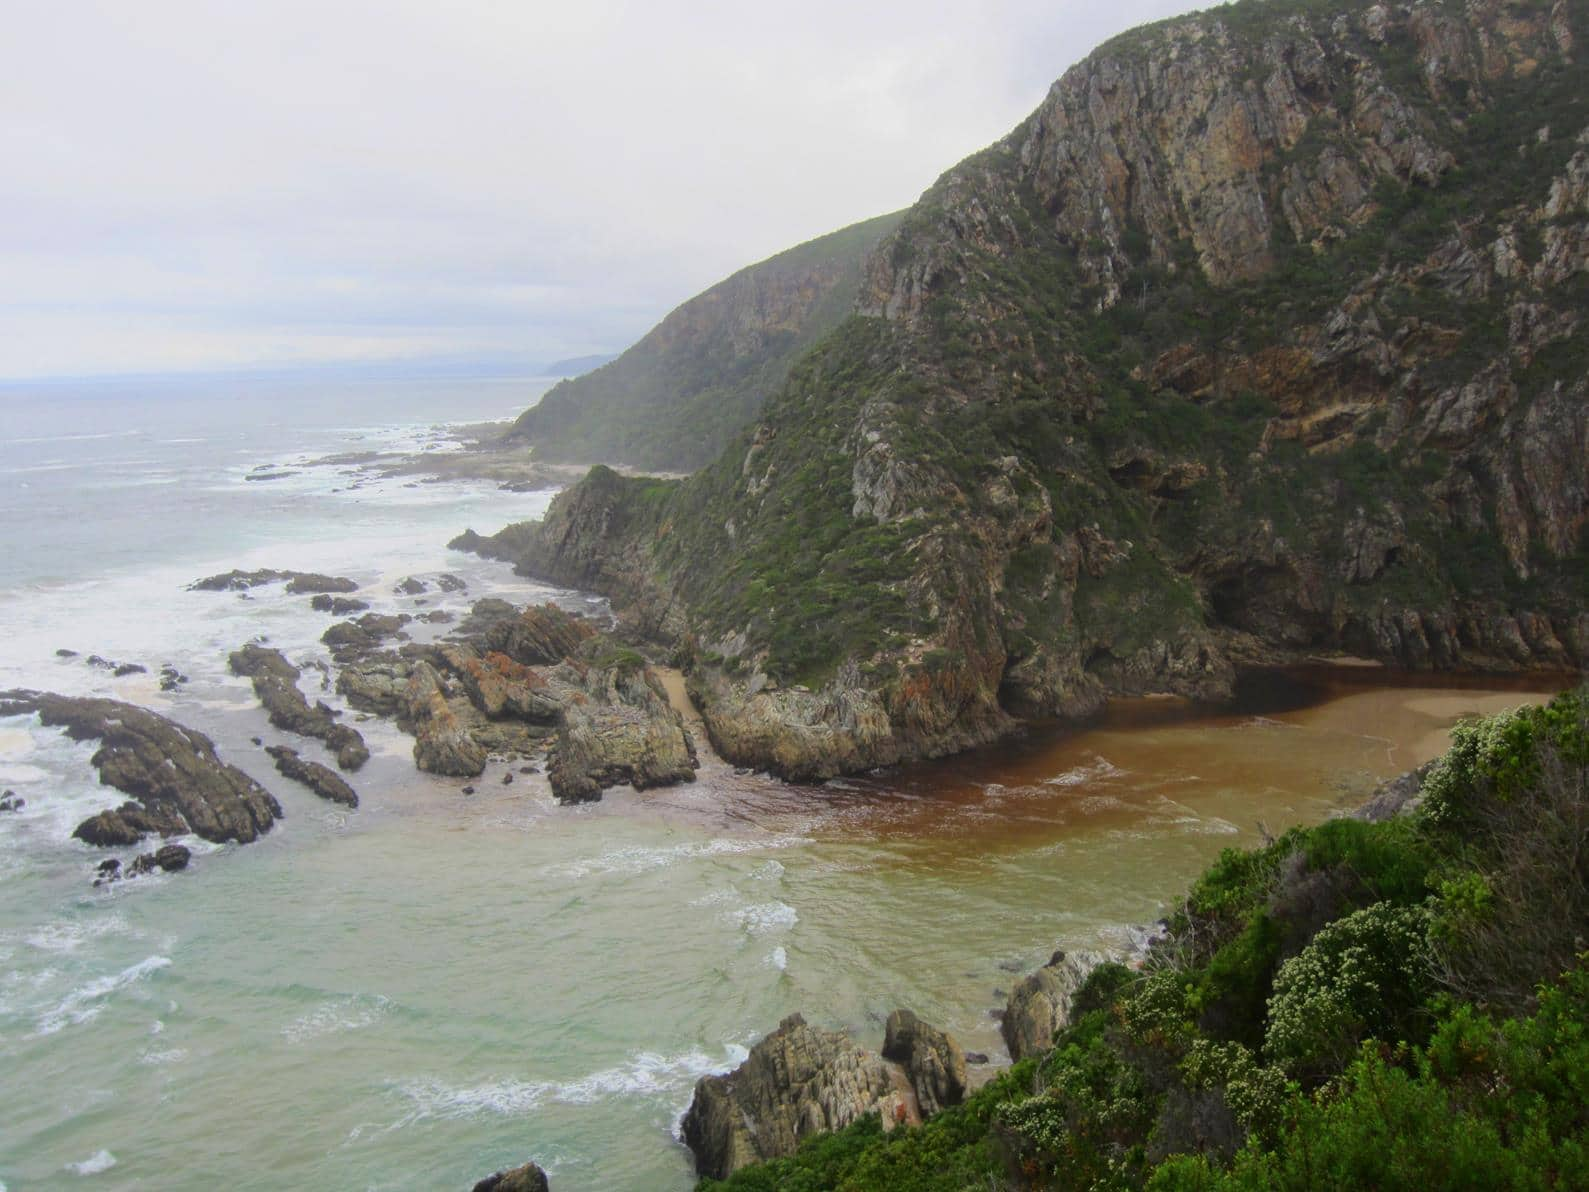 Bloukrans River mouth, the most difficult crossing on the Otter Trail.